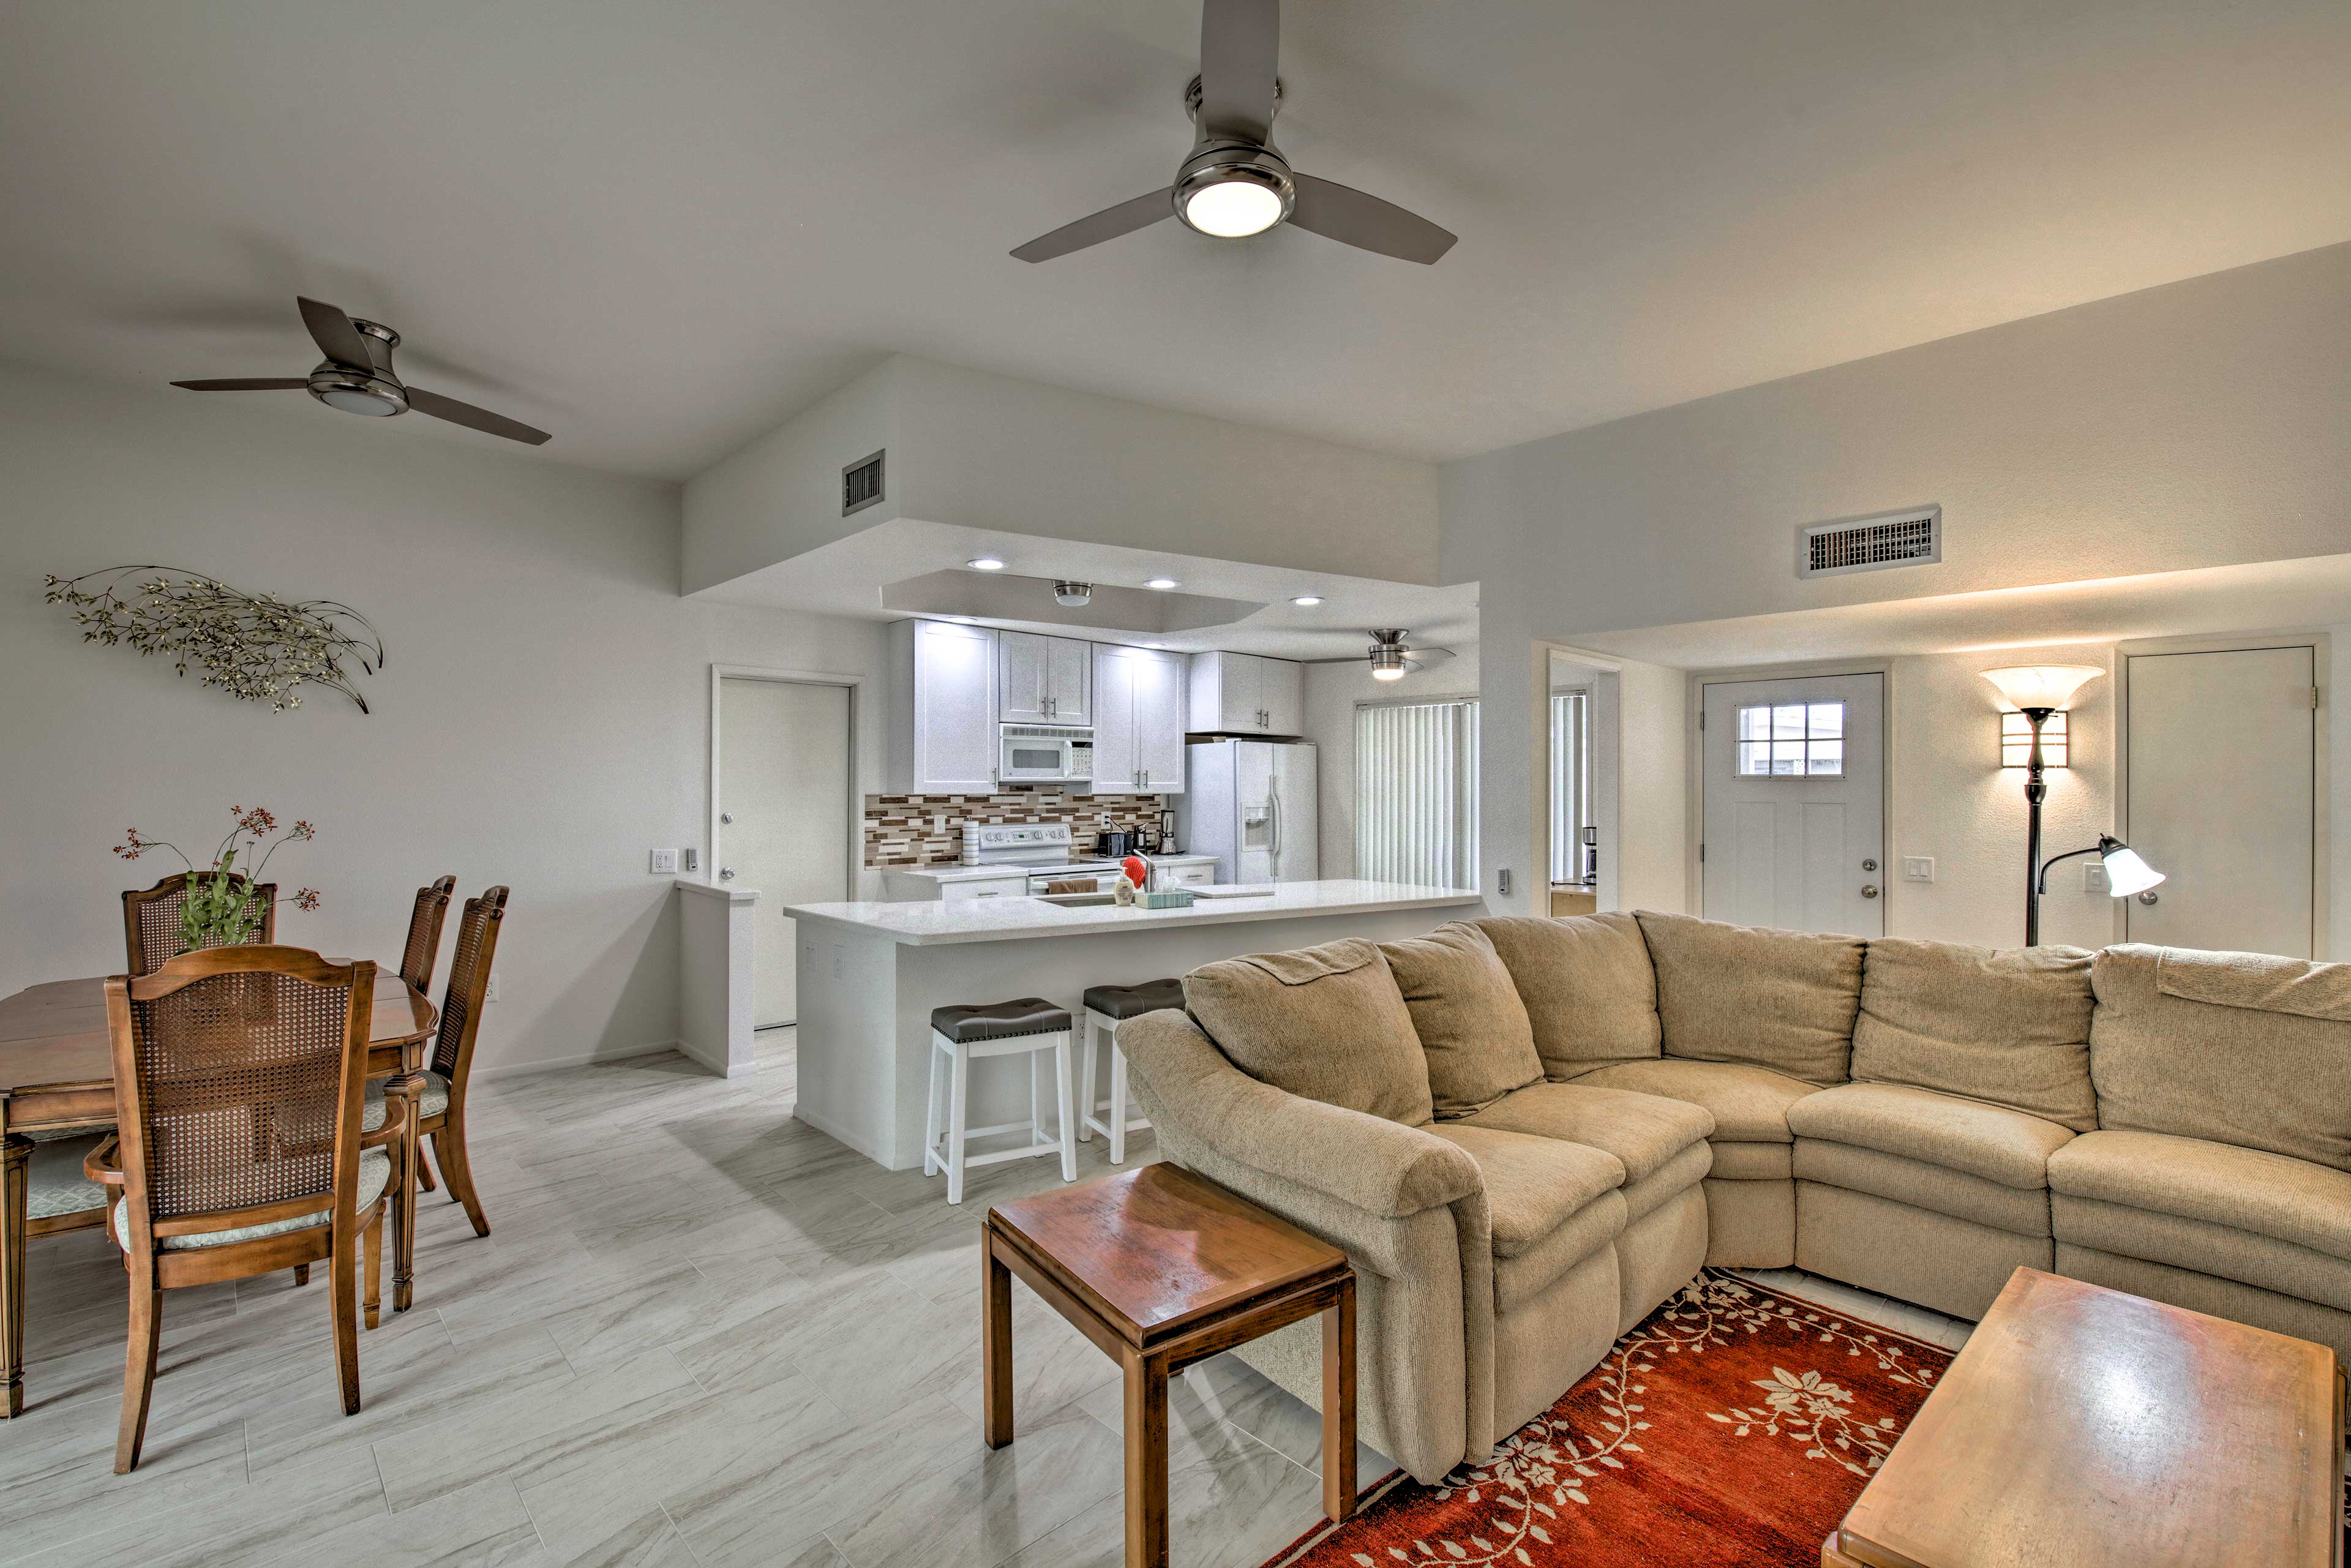 The open floor plan allows your group to spread out comfortably.